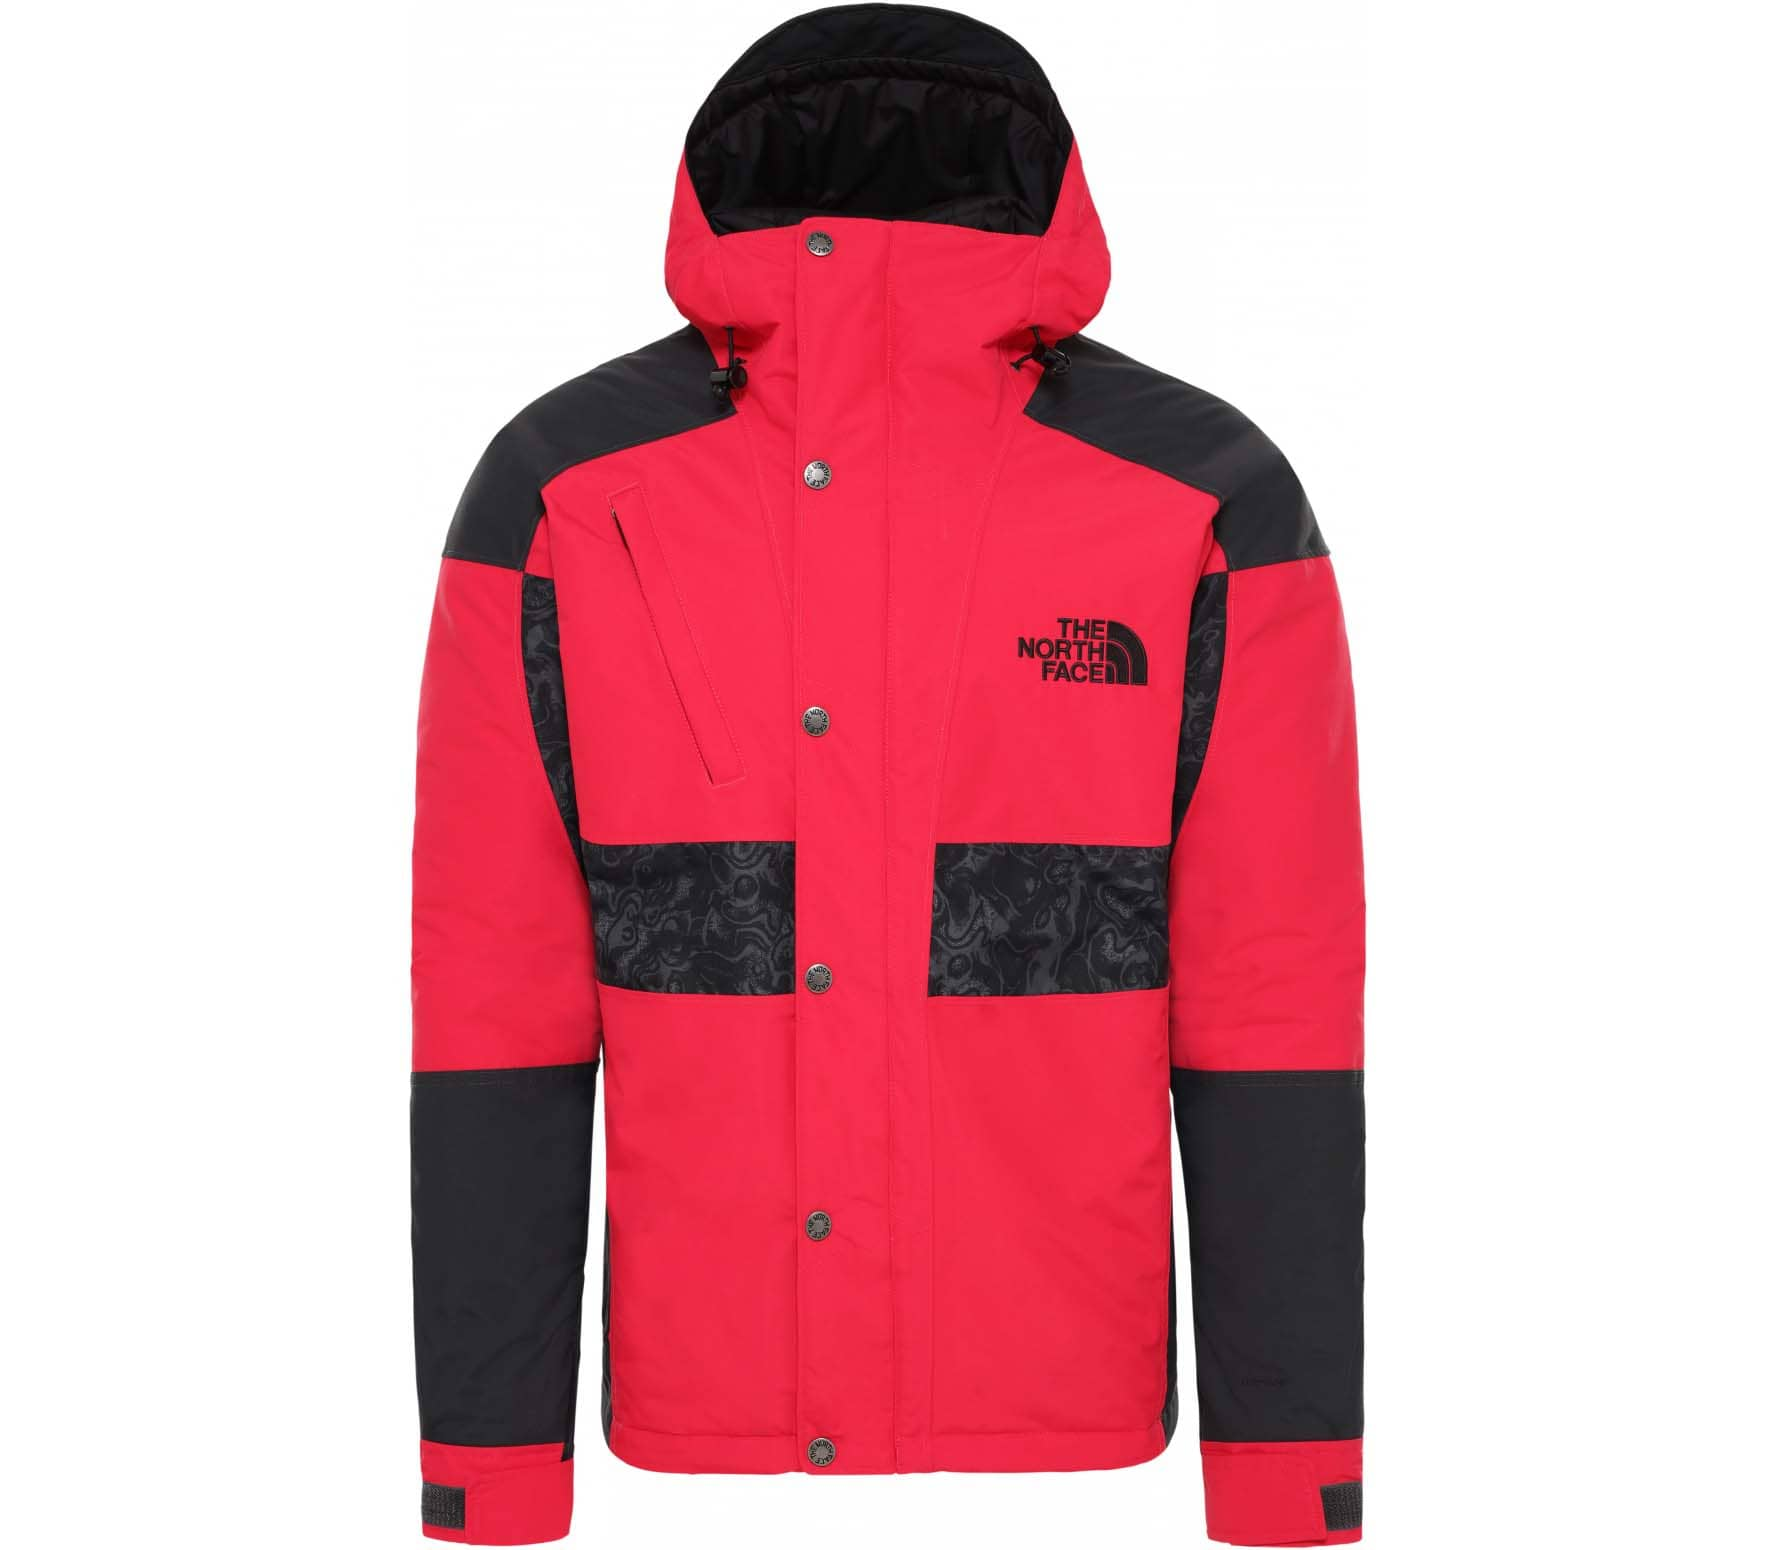 The North Face 94 Rage Wp Synthetic Insulated Unisex Jacket pink